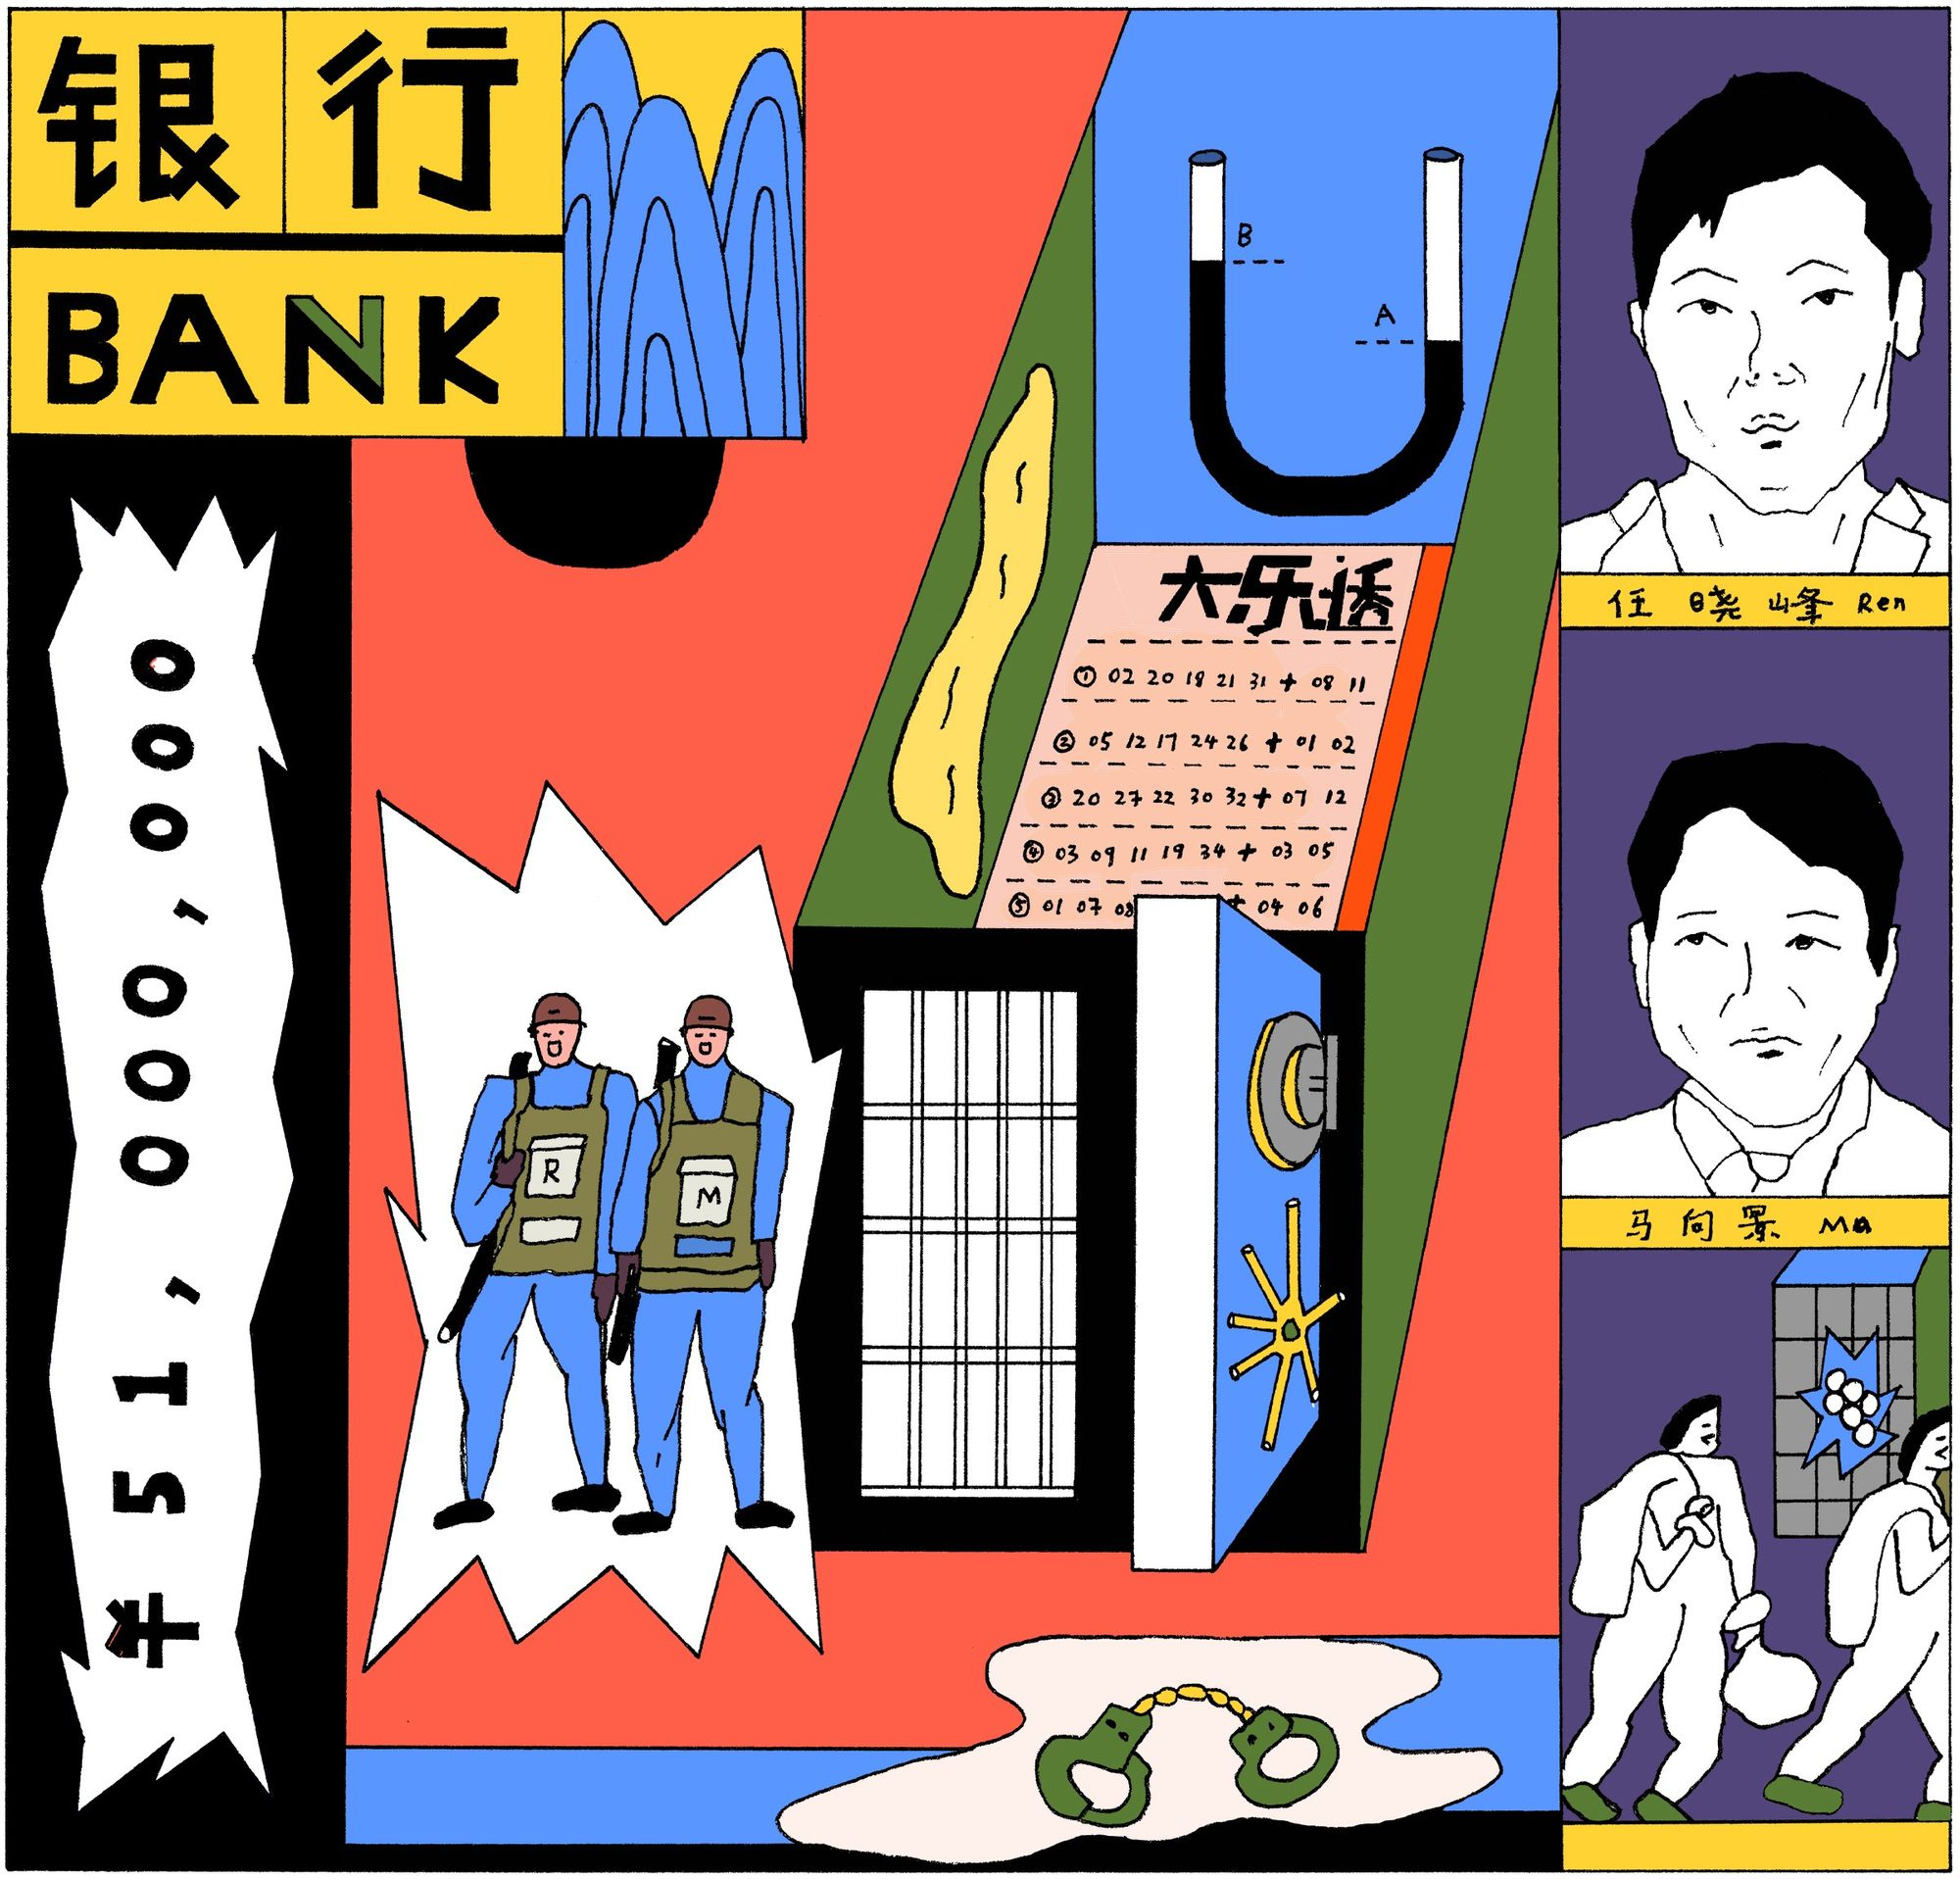 The Sunday Long Read: The story behind China's biggest bank heist